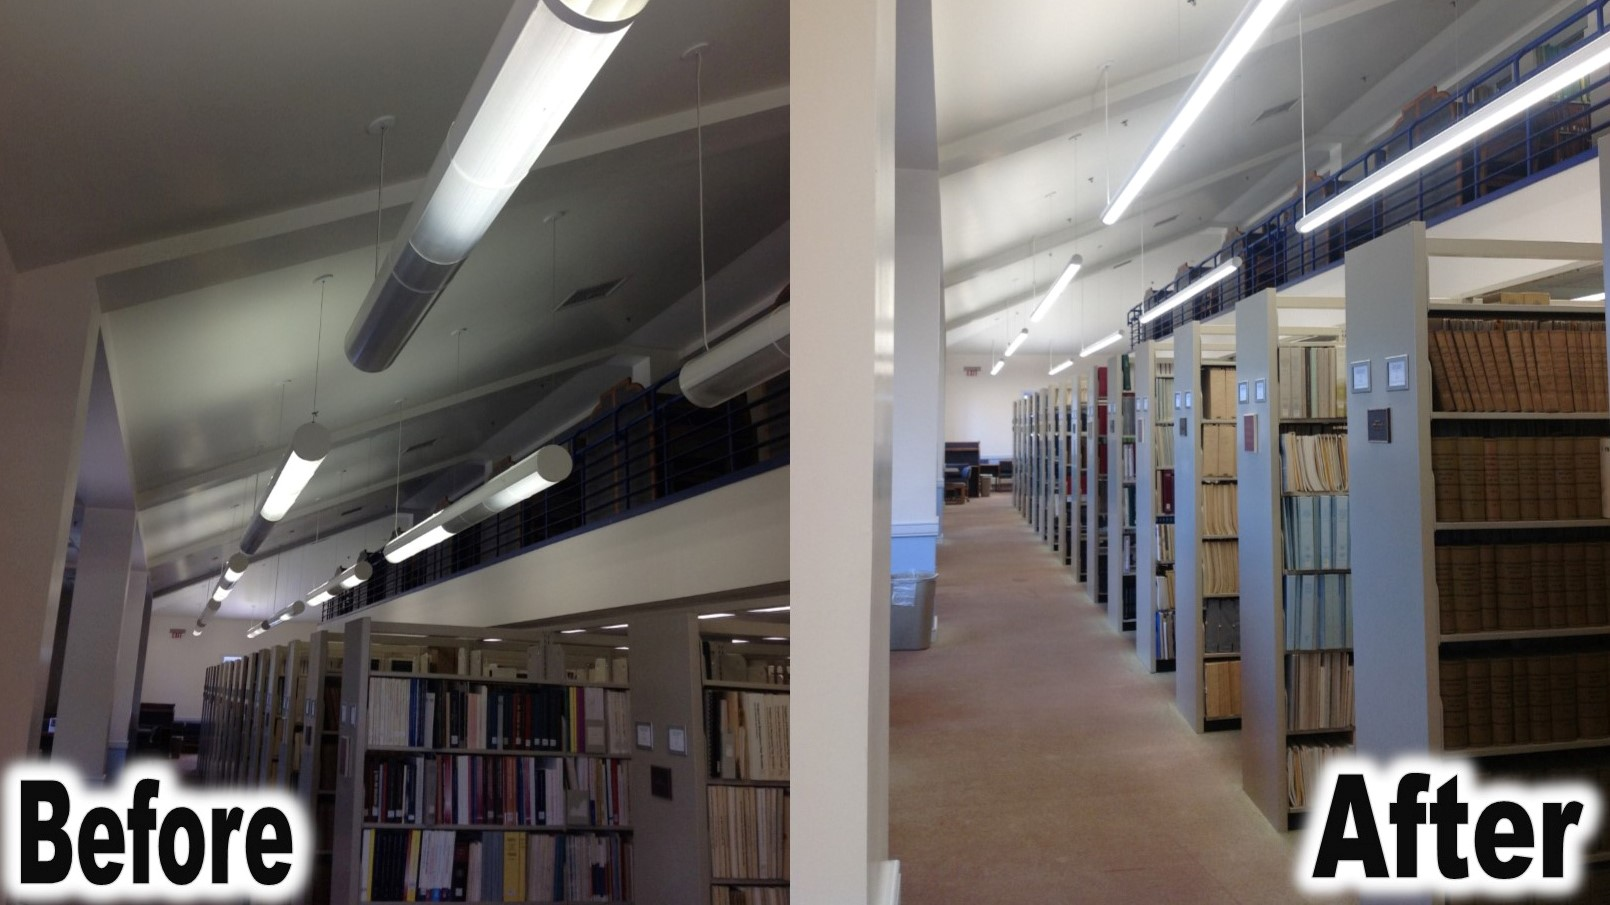 F_M__Library____Before__Fluorescent_Lighting__and_After__LED_Lighting__cropped